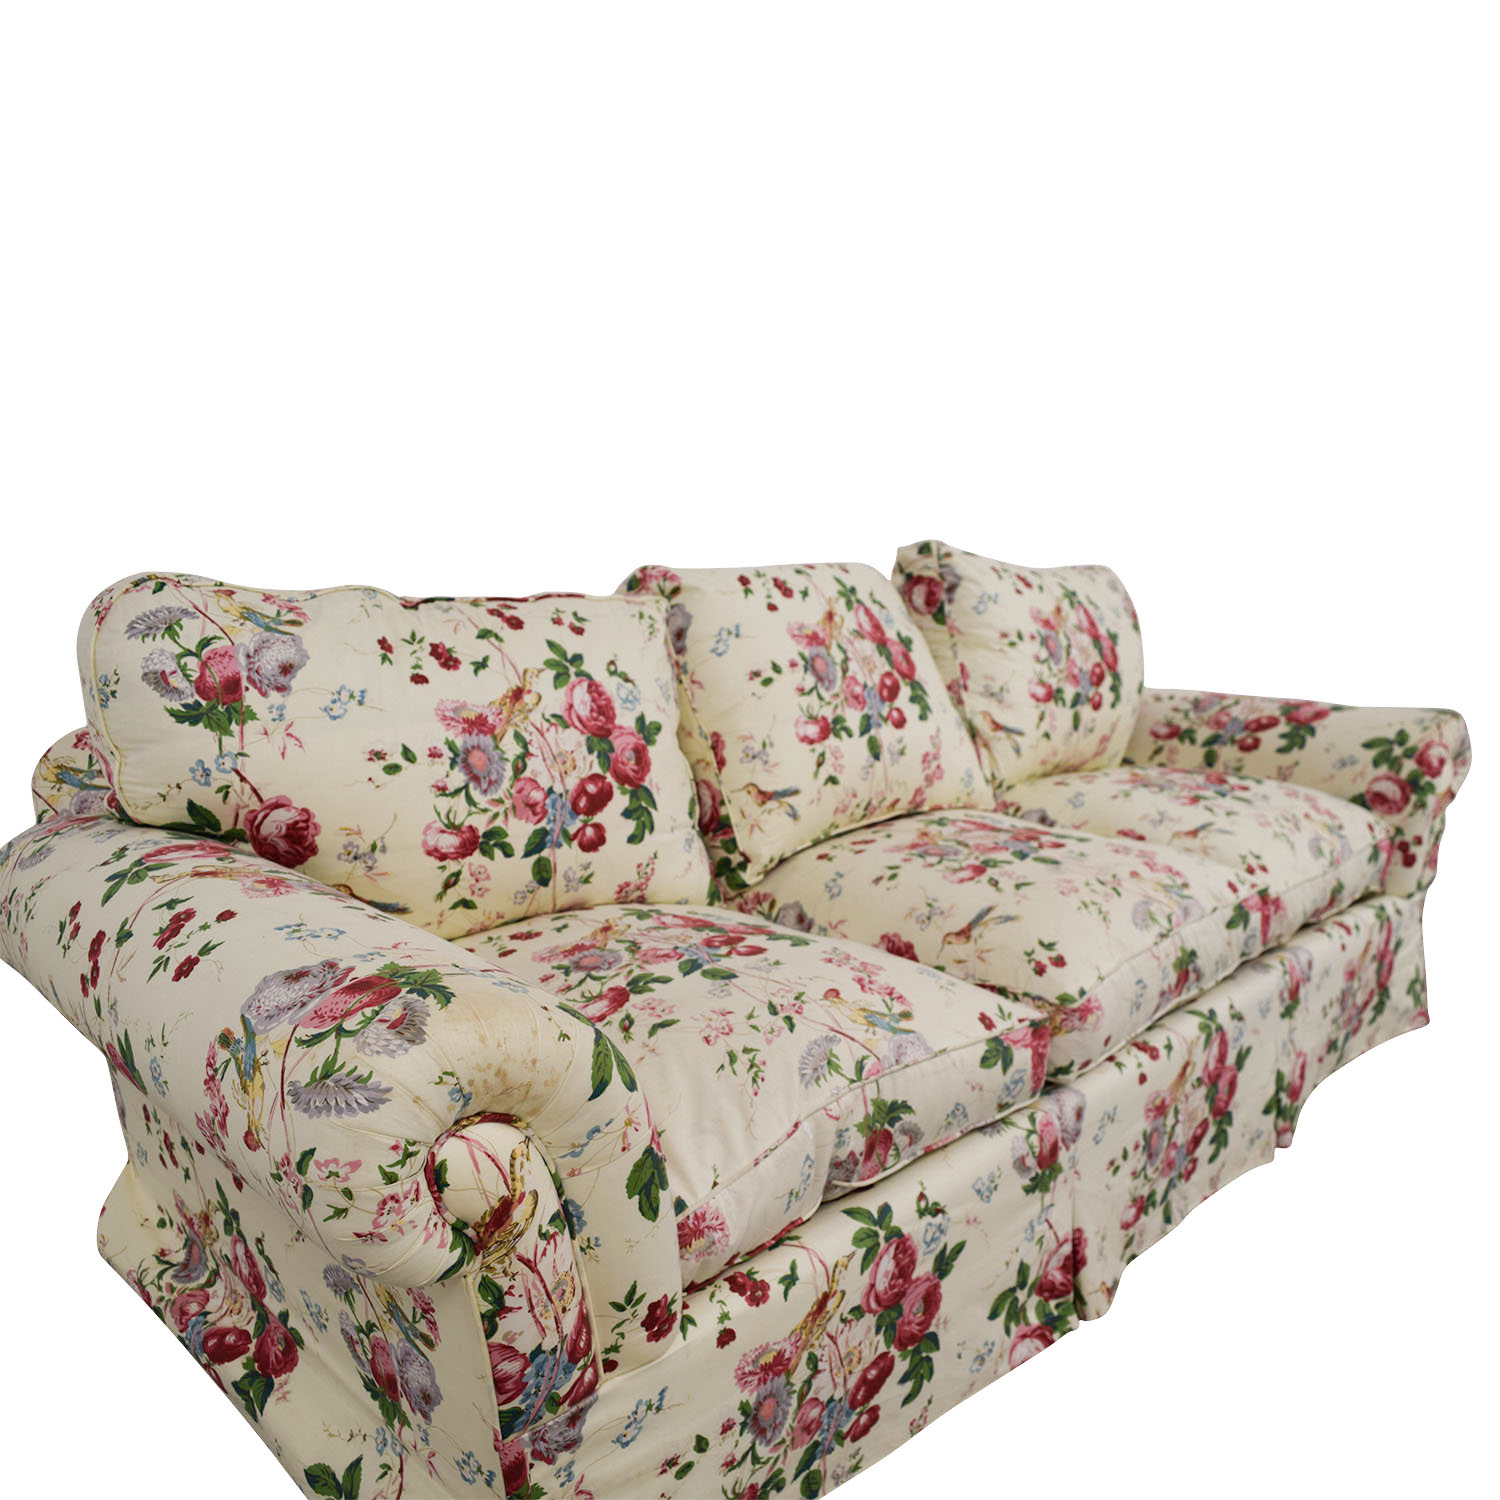 Floral on White Three-Cushion Sofa with Curved Arms second hand